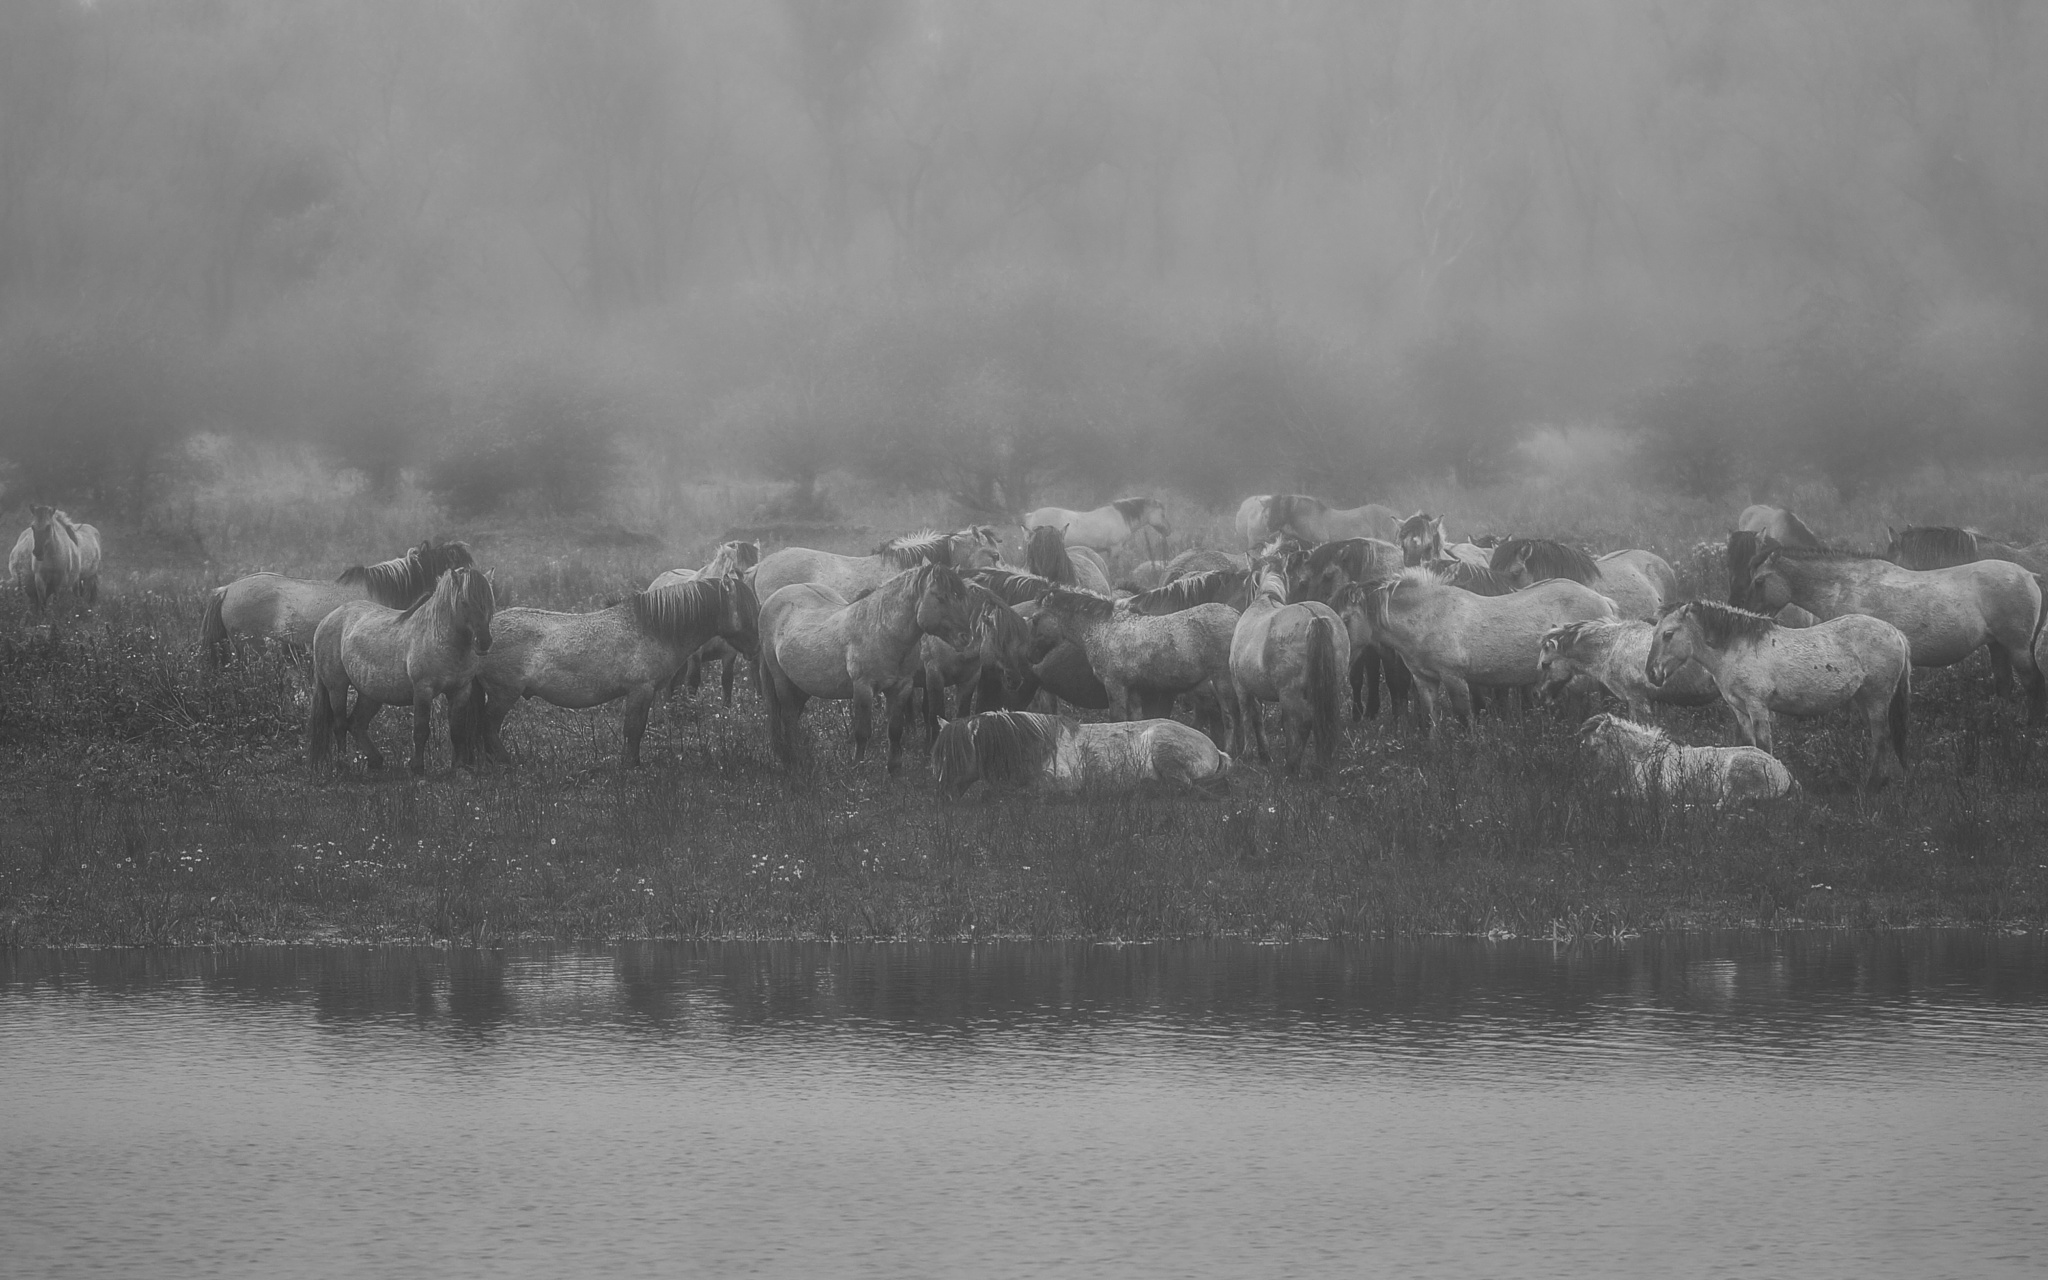 Wild horses in the fog by Sarah Di Tucci